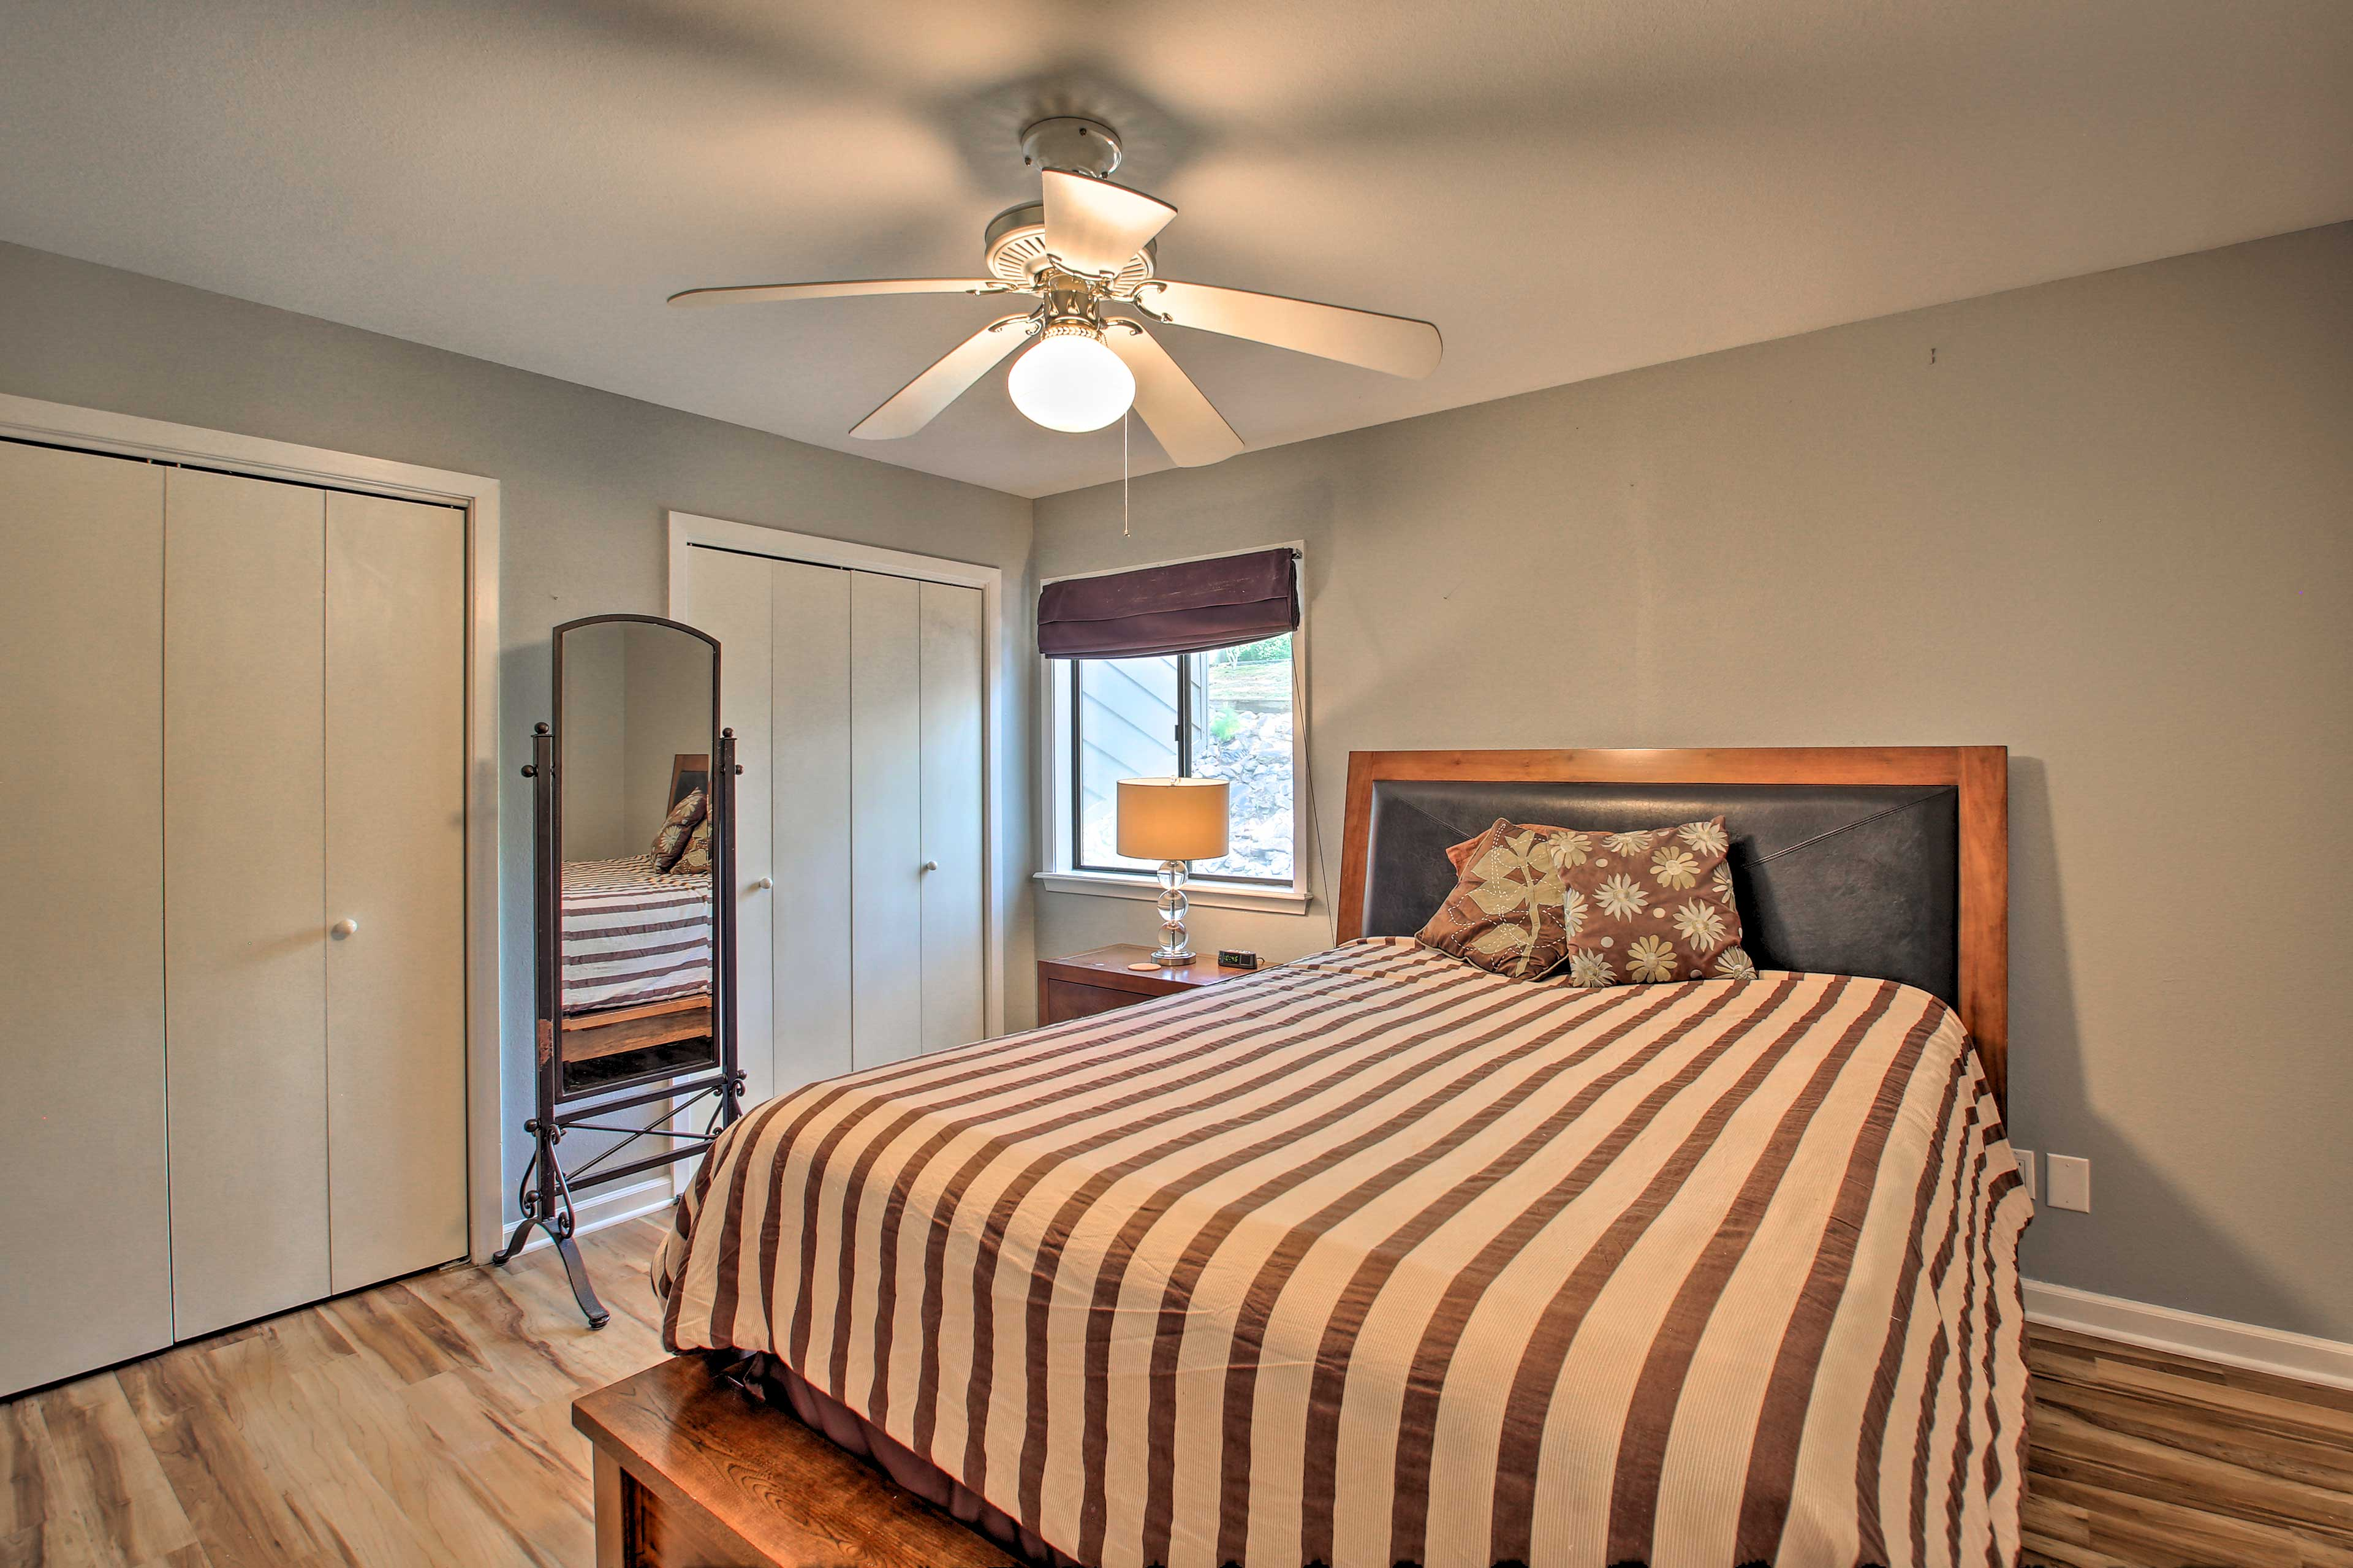 The second room is equipped with a queen bed.